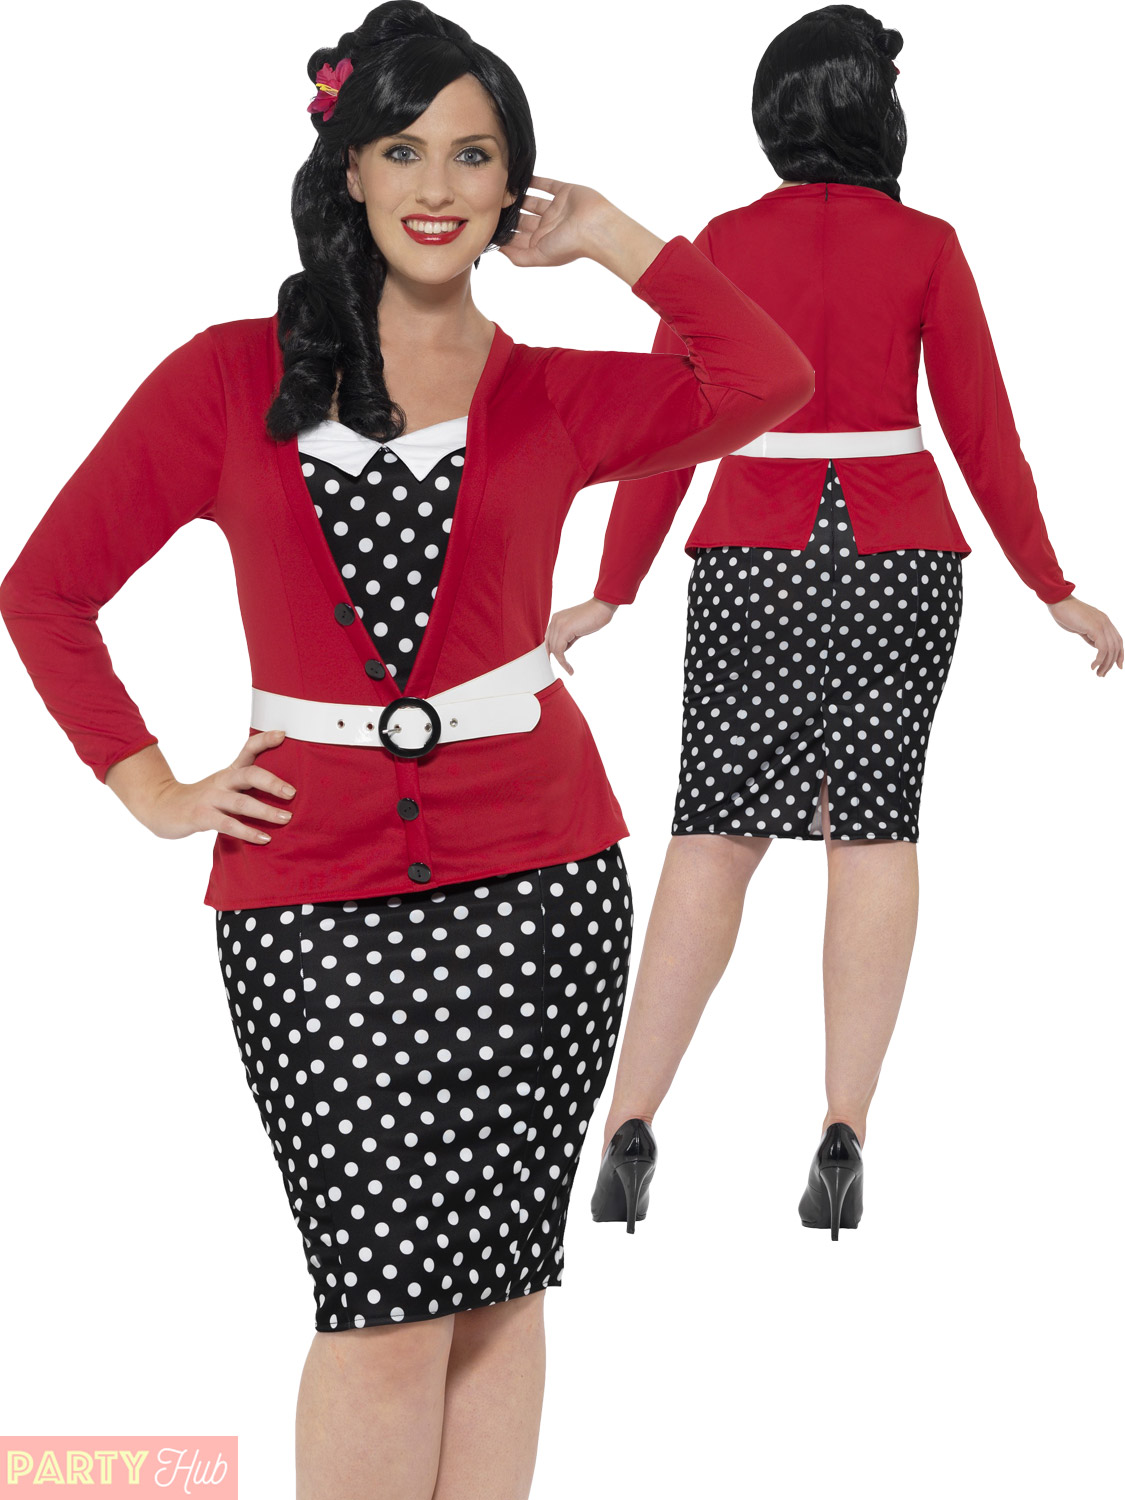 Details about Ladies 1950s Pin Up Curves Costume Adult Womans 50s Plus Size  Fancy Dress Outfit